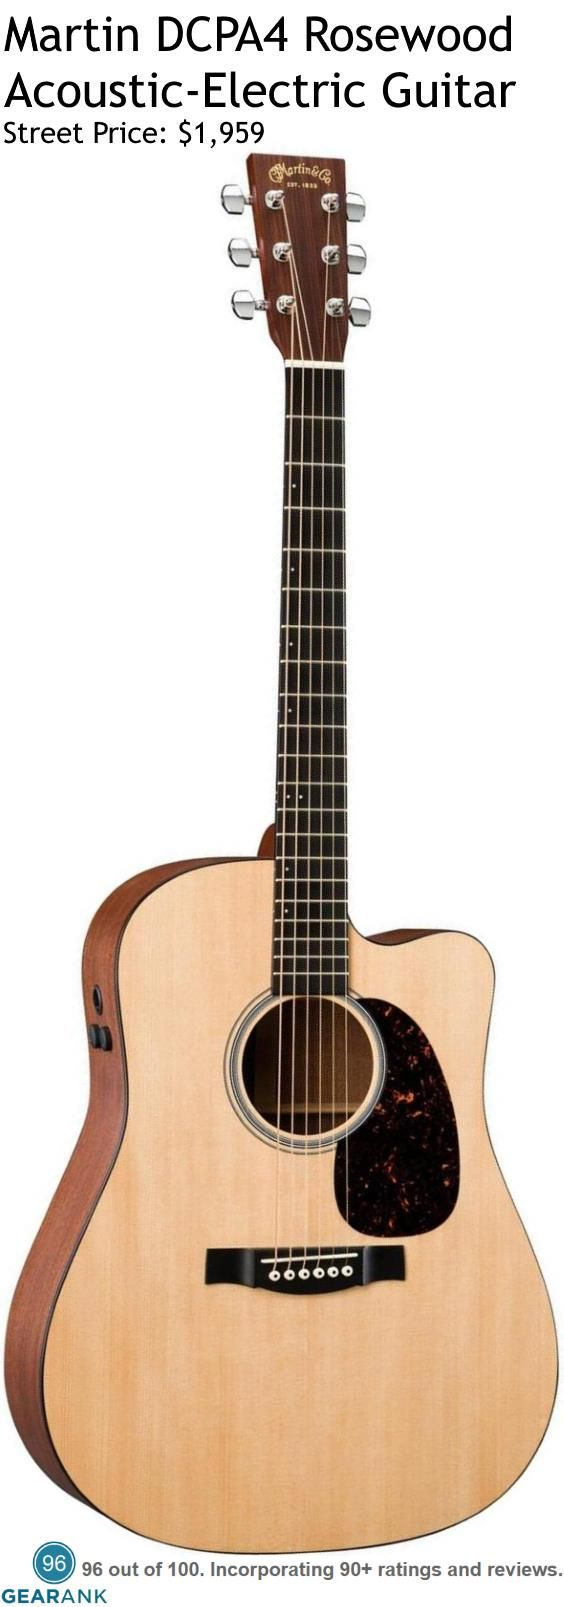 "Martin DCPA4 Rosewood Acoustic-Electric Guitar. Specifications: Top: Solid Sitka Spruce - Body: Solid East Indian Rosewood back & sides - Finish: Gloss - Natural - Bridge: Richlite - Neck: Select Hardwood - Fingerboard: Richlite Fingerboard Radius: 16"" - Scale Length: 25.4"" - Nut Width: 1.75"" - Nut: White Corian - Saddle: Compensated White Tusq - Electronics: Fishman F1 Analog preamp & pickup."